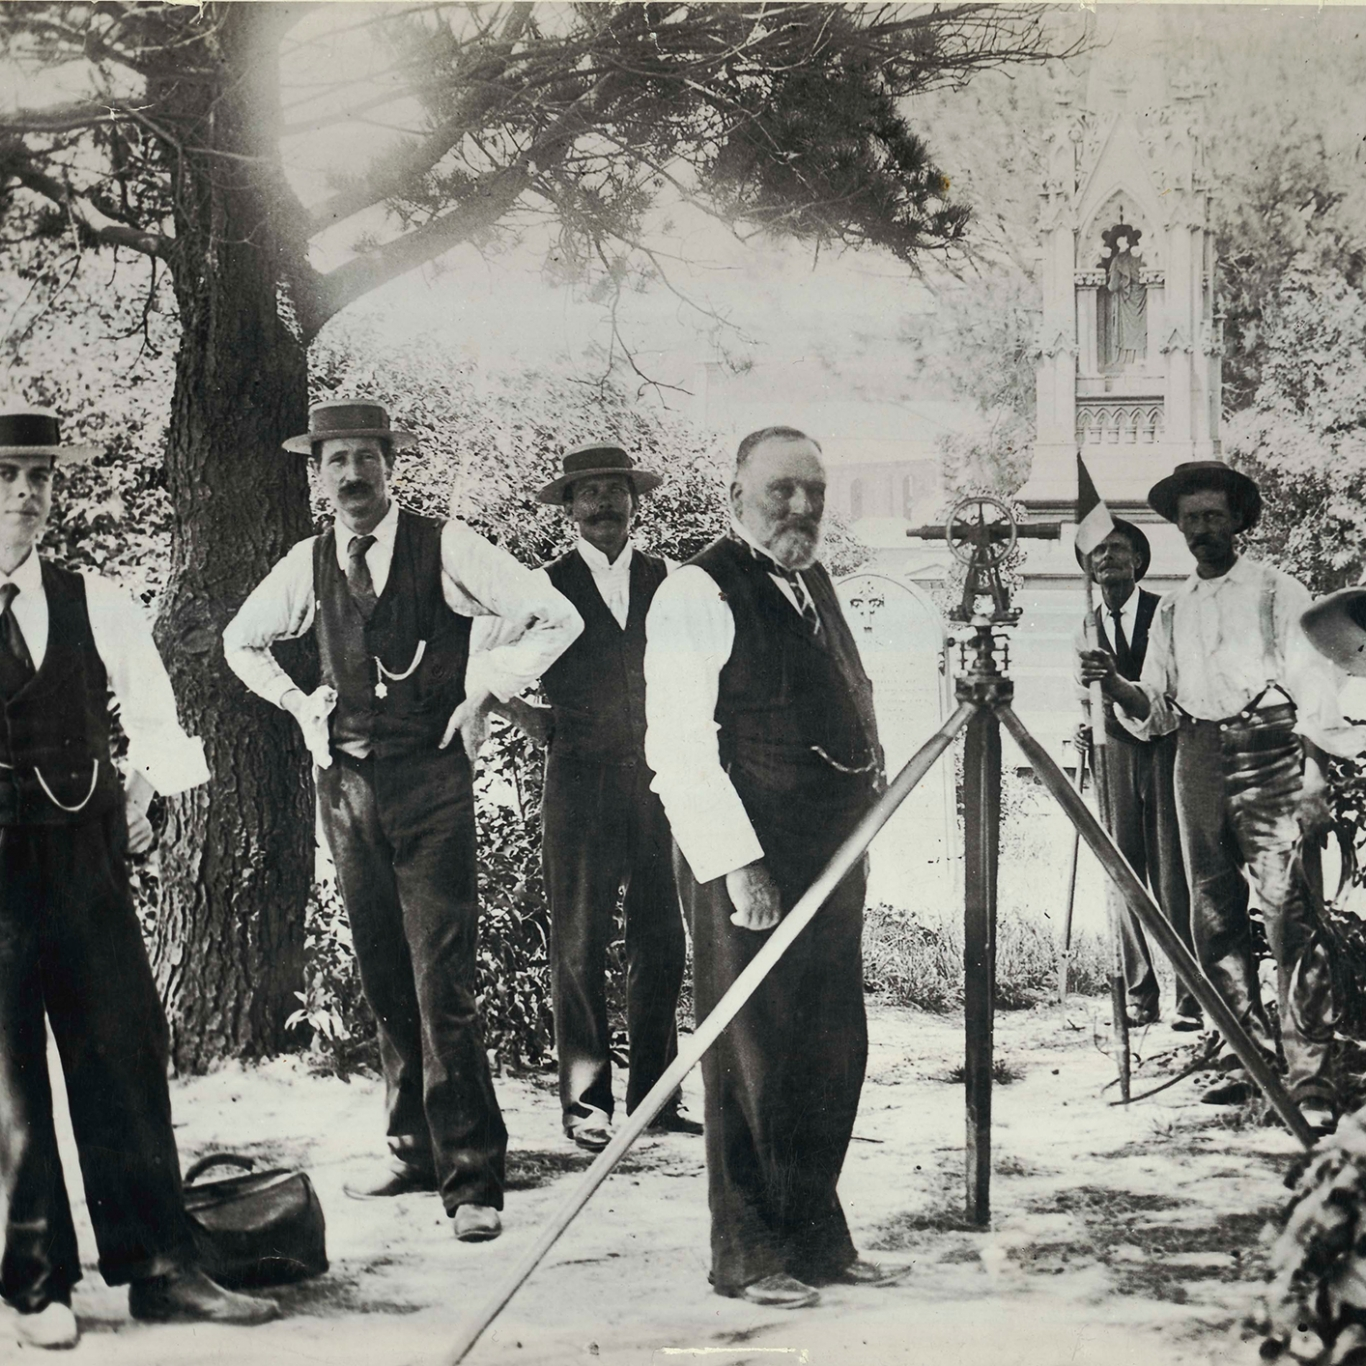 Black and white photo of group of men in shirtsleeves and waistcoats in outdoor setting.